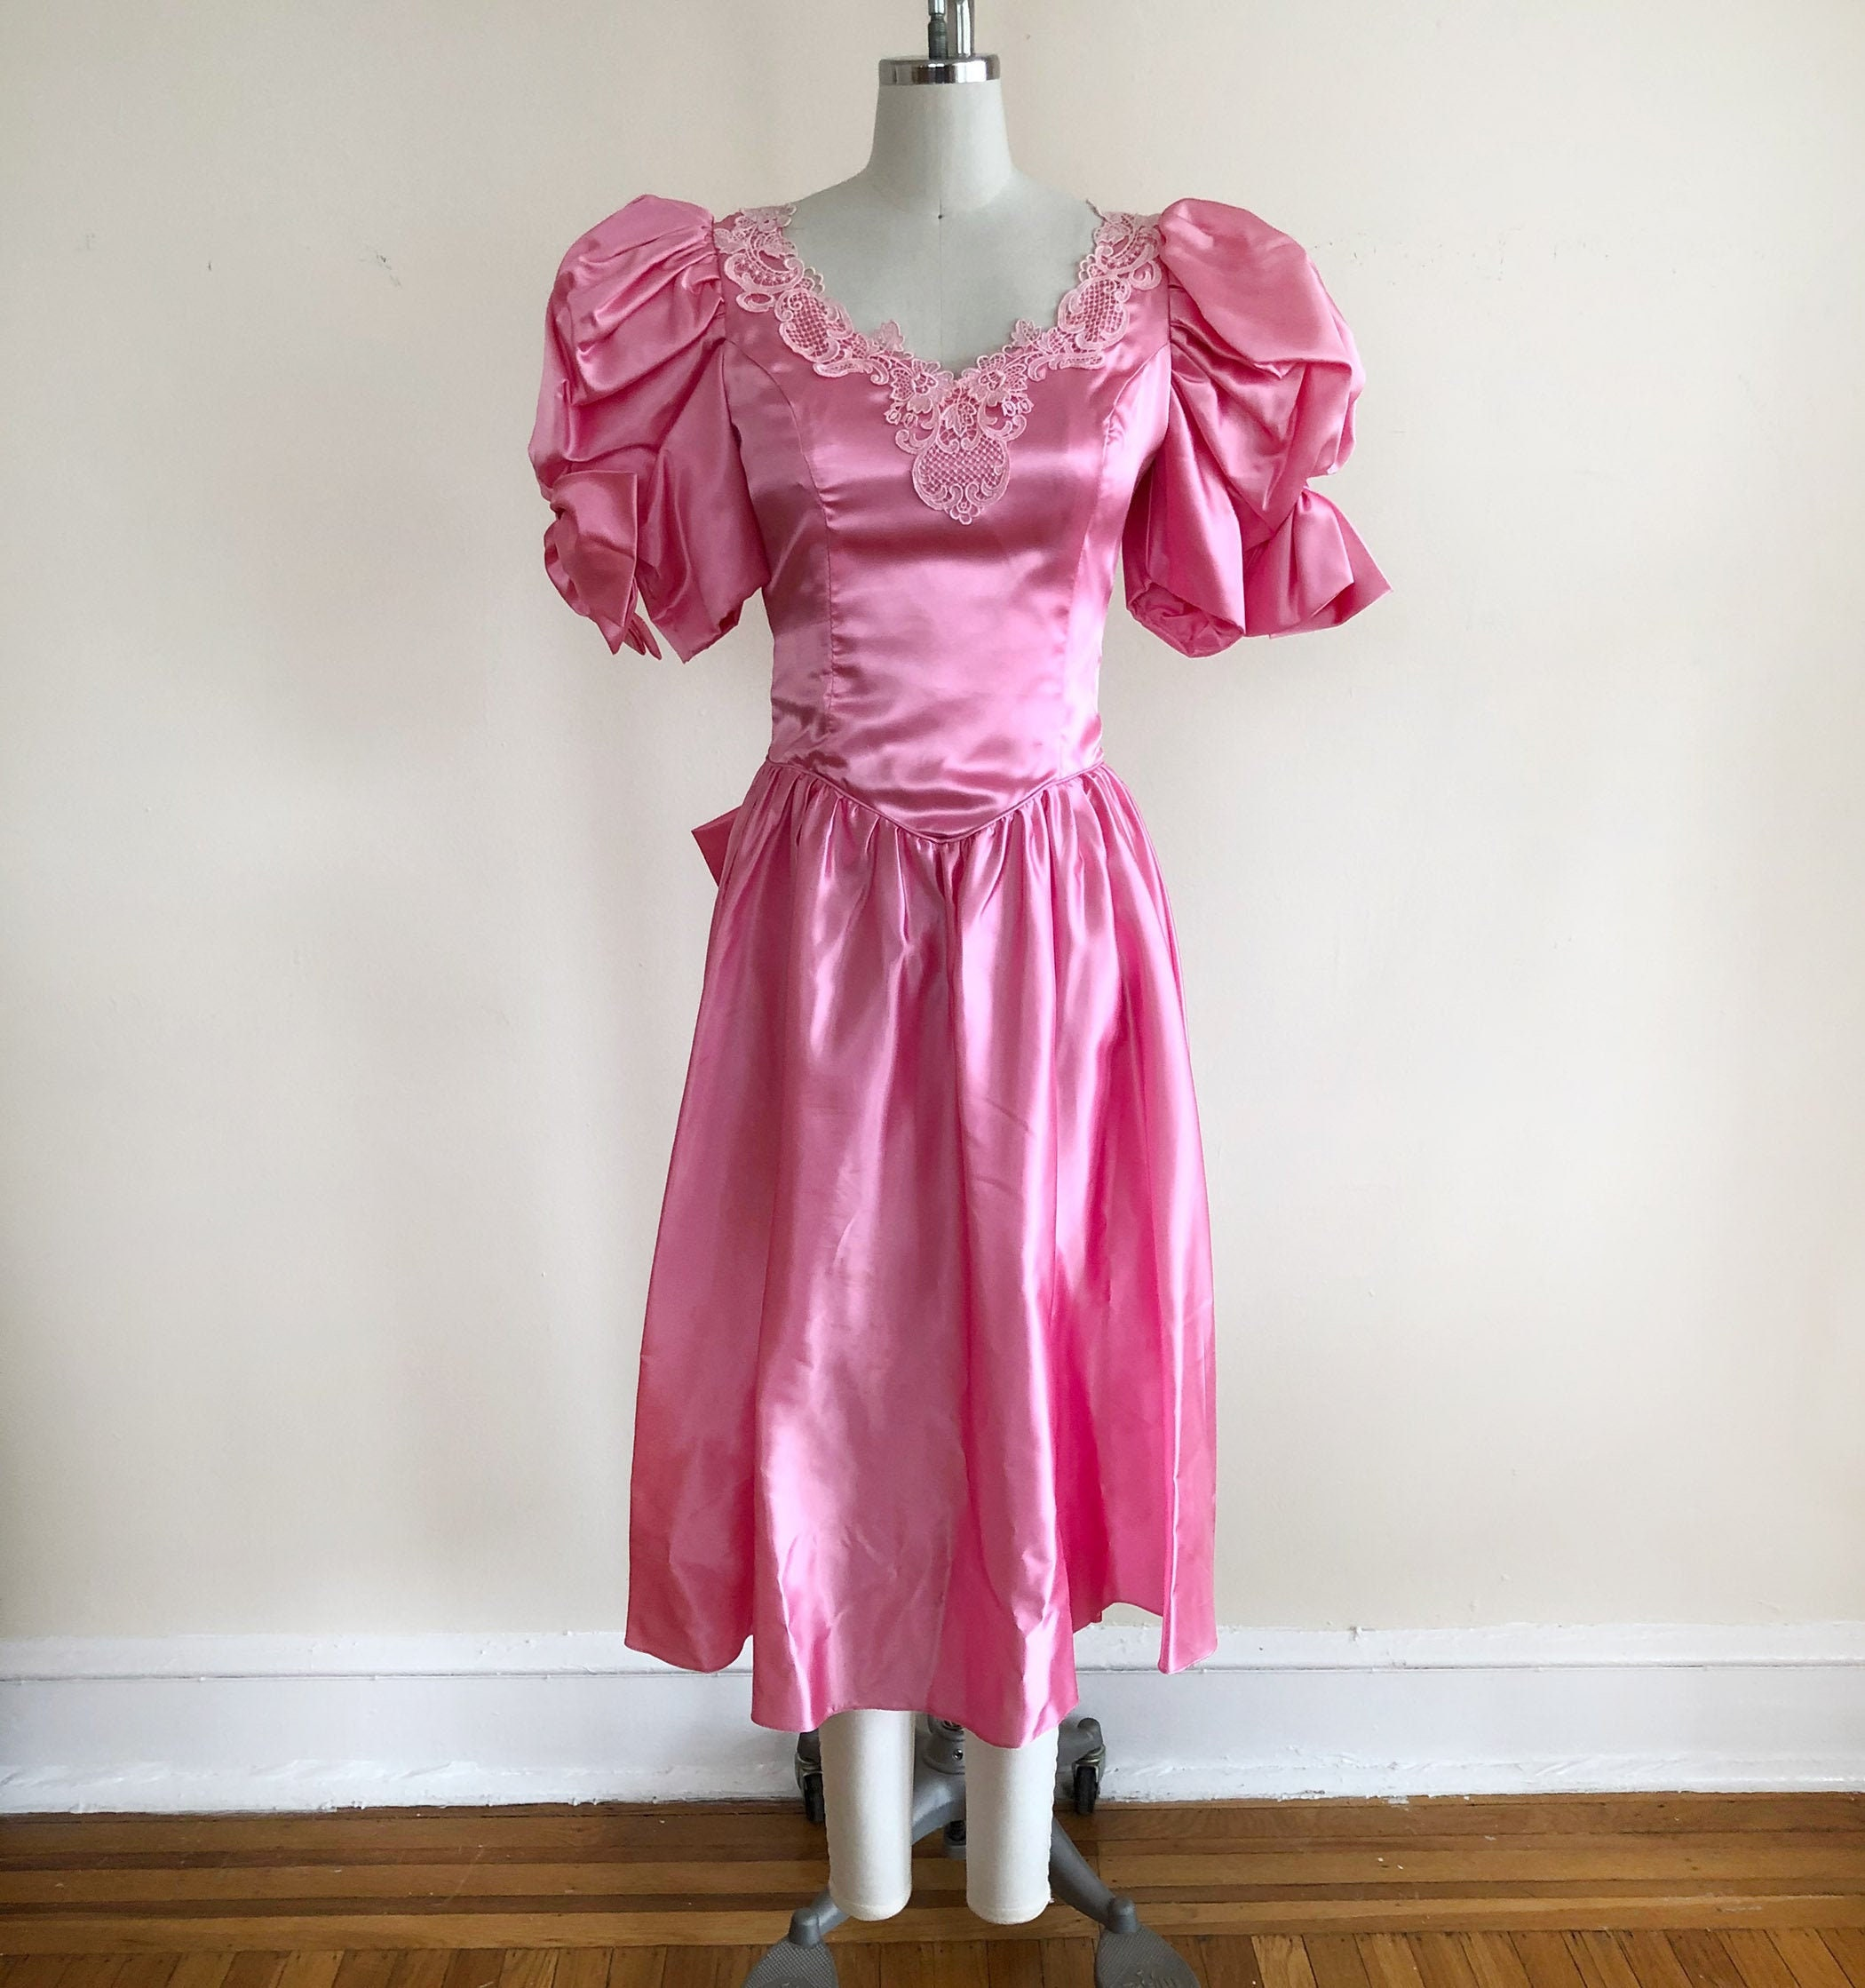 80s Dresses | Casual to Party Dresses Bright Pink Satin Party Dress - 1980S $28.00 AT vintagedancer.com